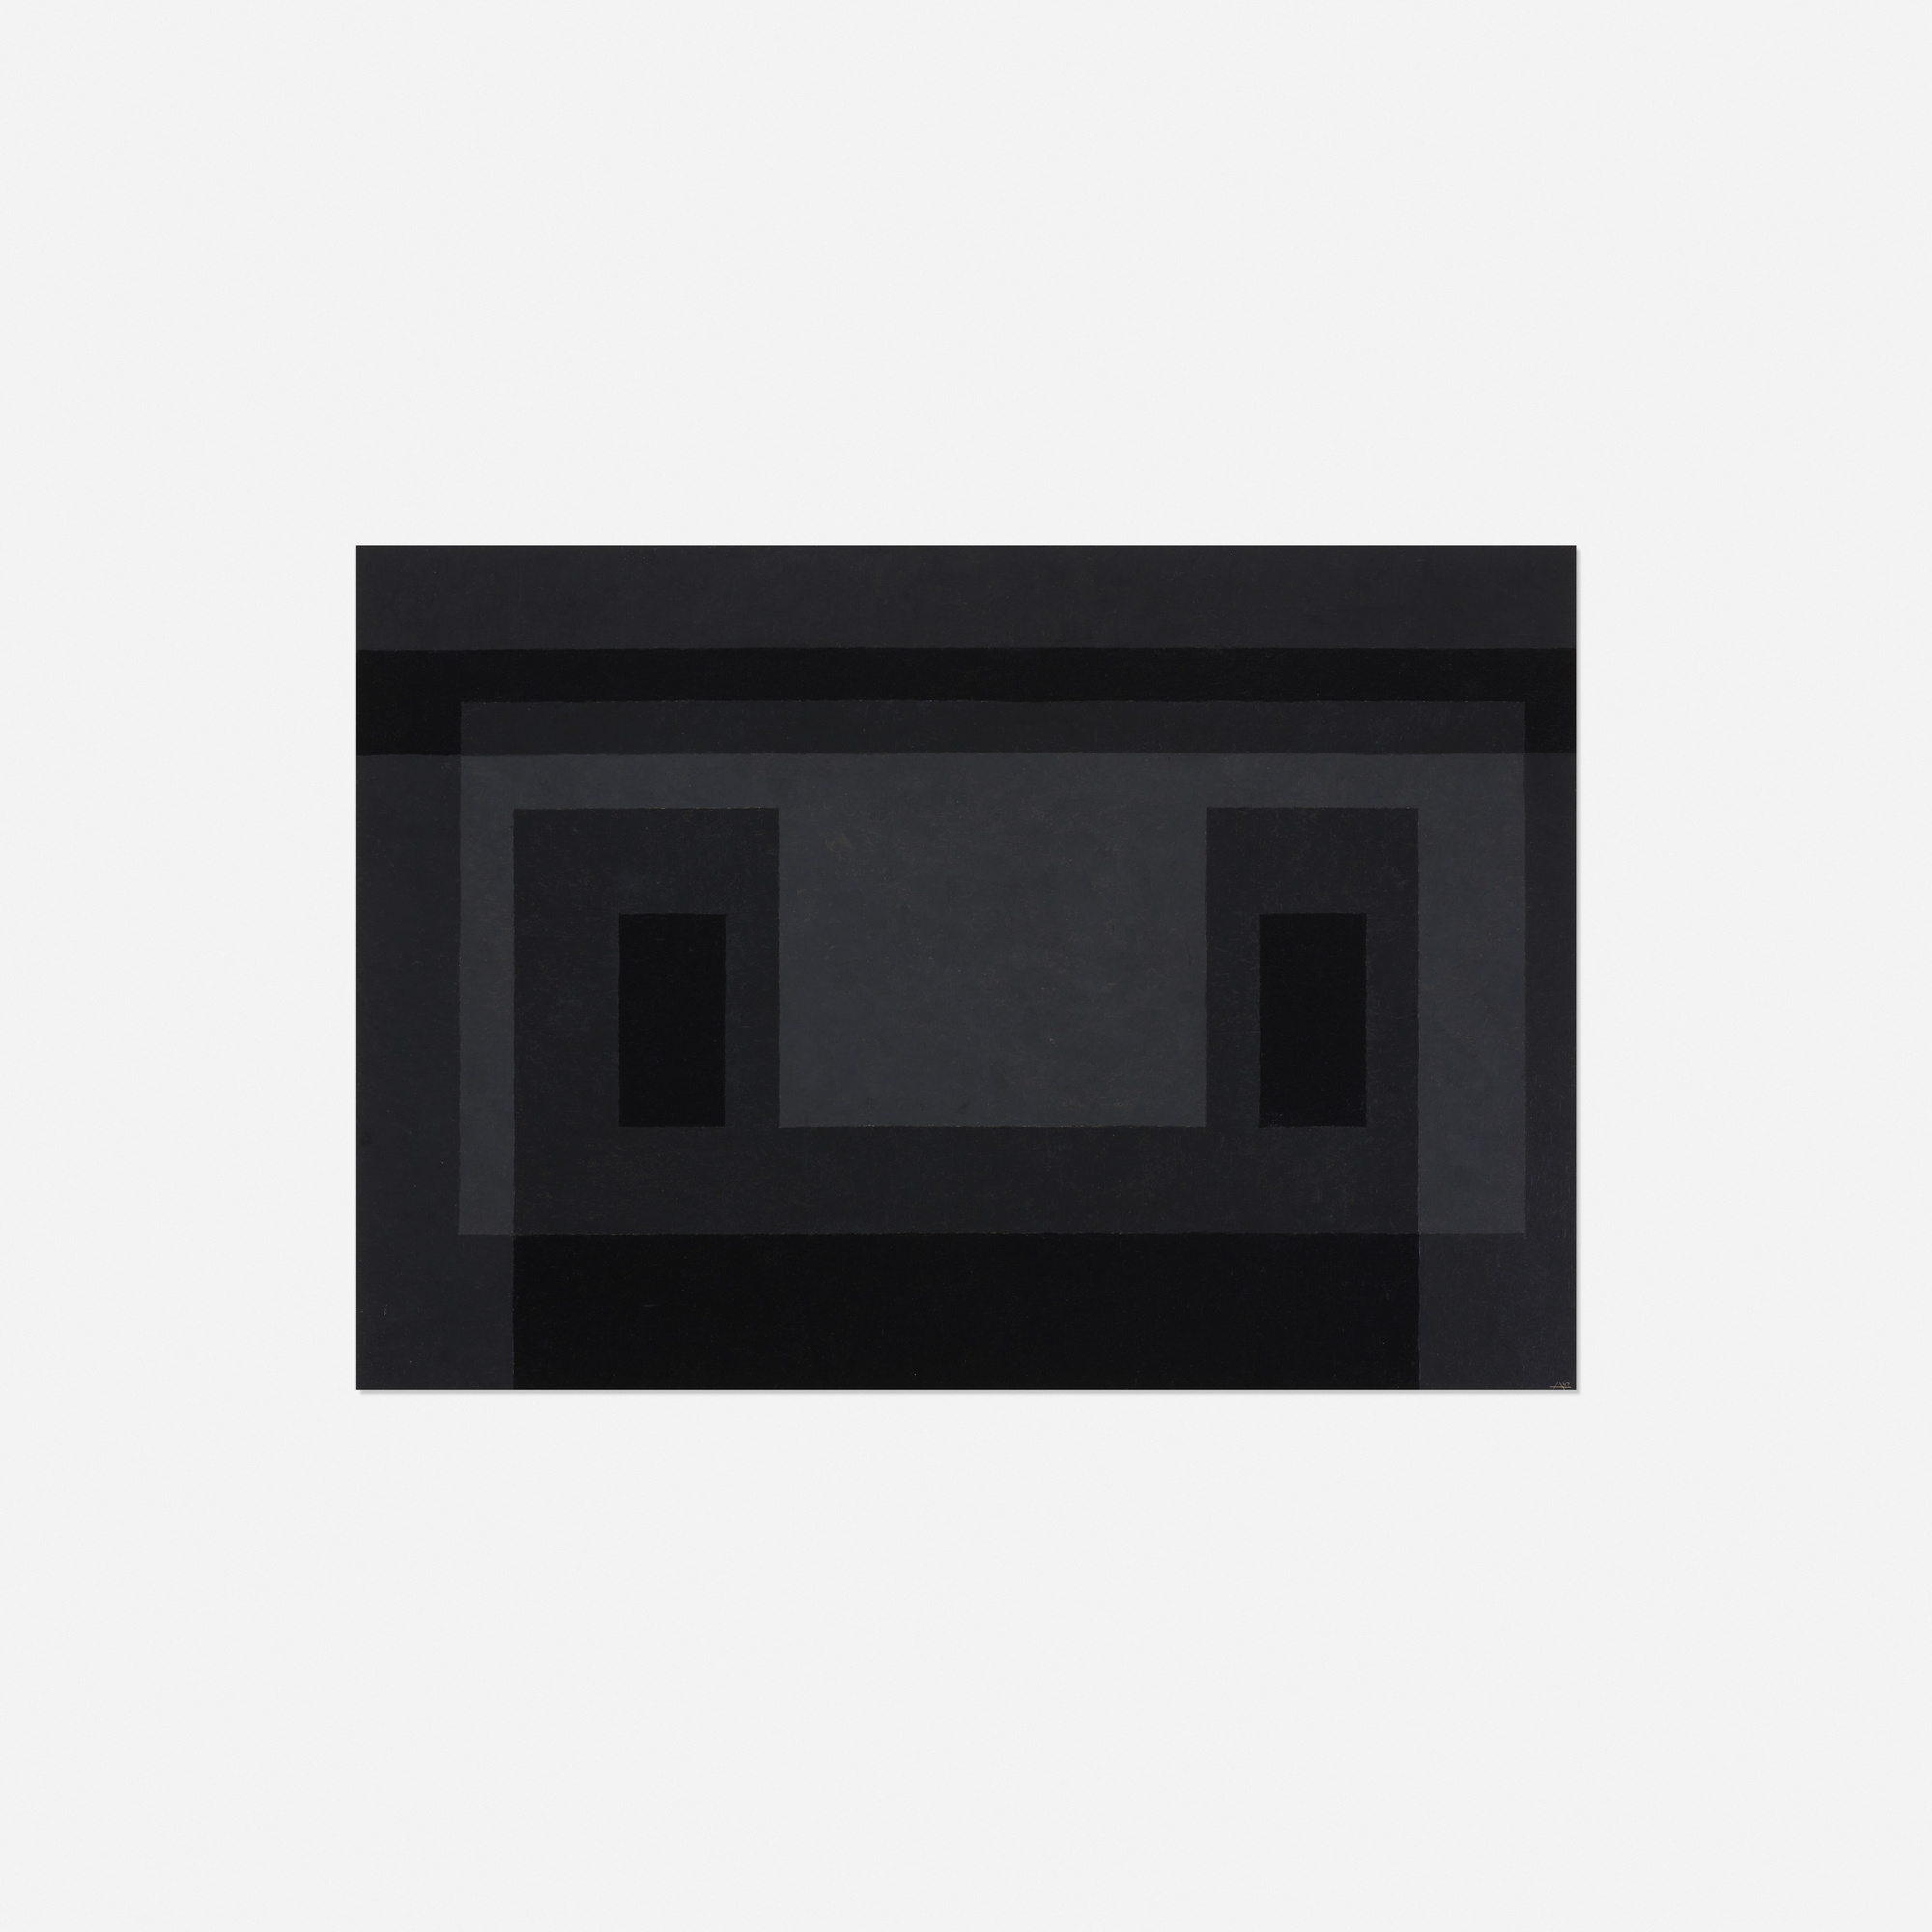 Dark by Josef Albers. Image courtesy of Wright Auctions.